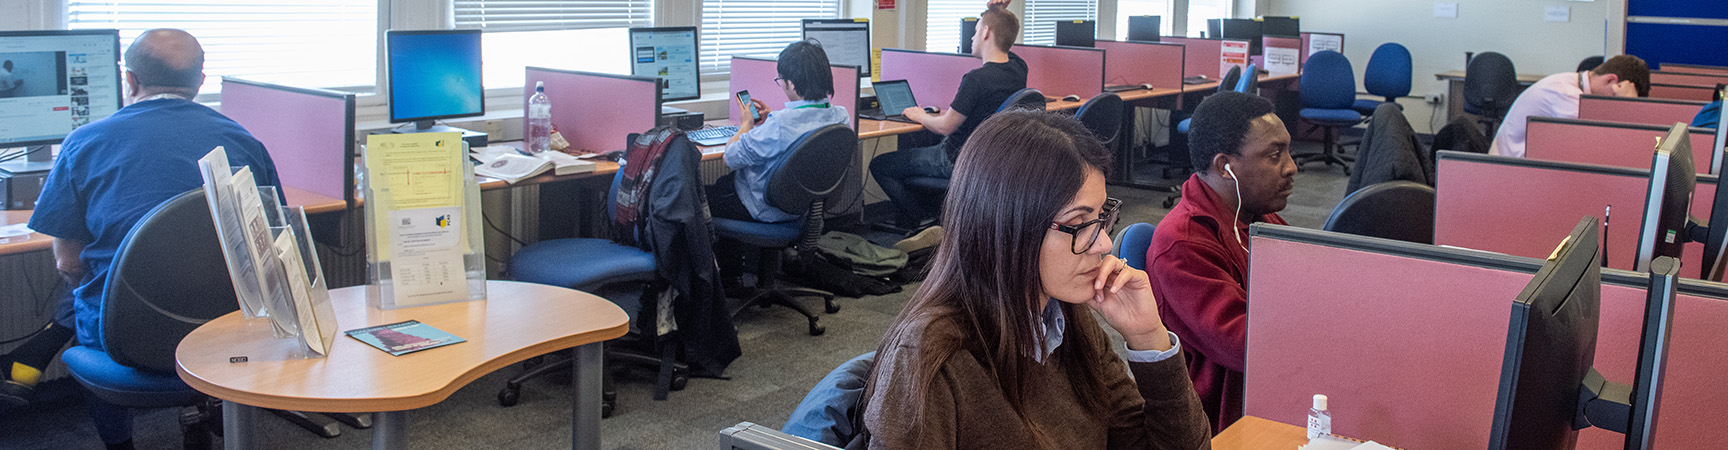 Students sit at individual desks each using a desktop computer, they are separated with red separators